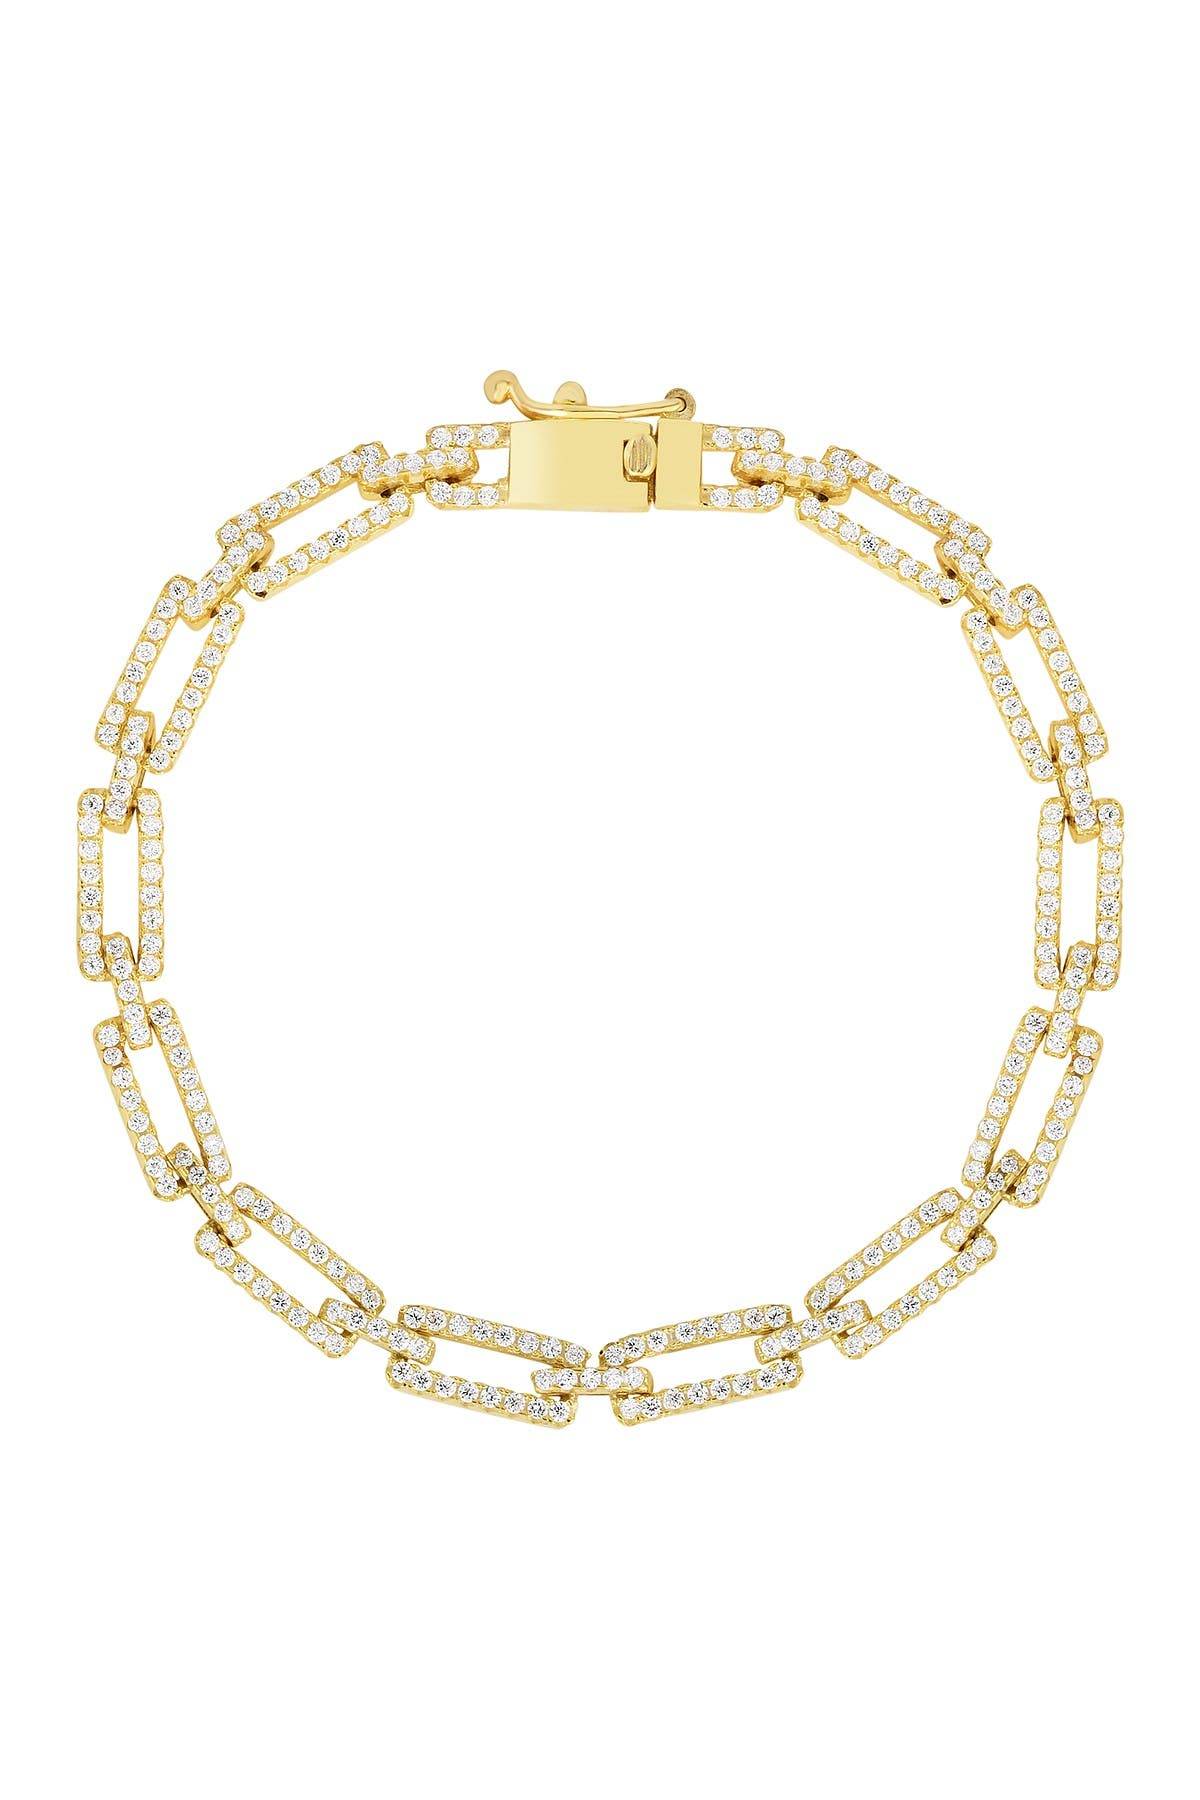 Image of Sphera Milano 14K Yellow Gold Plated Sterling Silver Pave CZ Link Bracelet